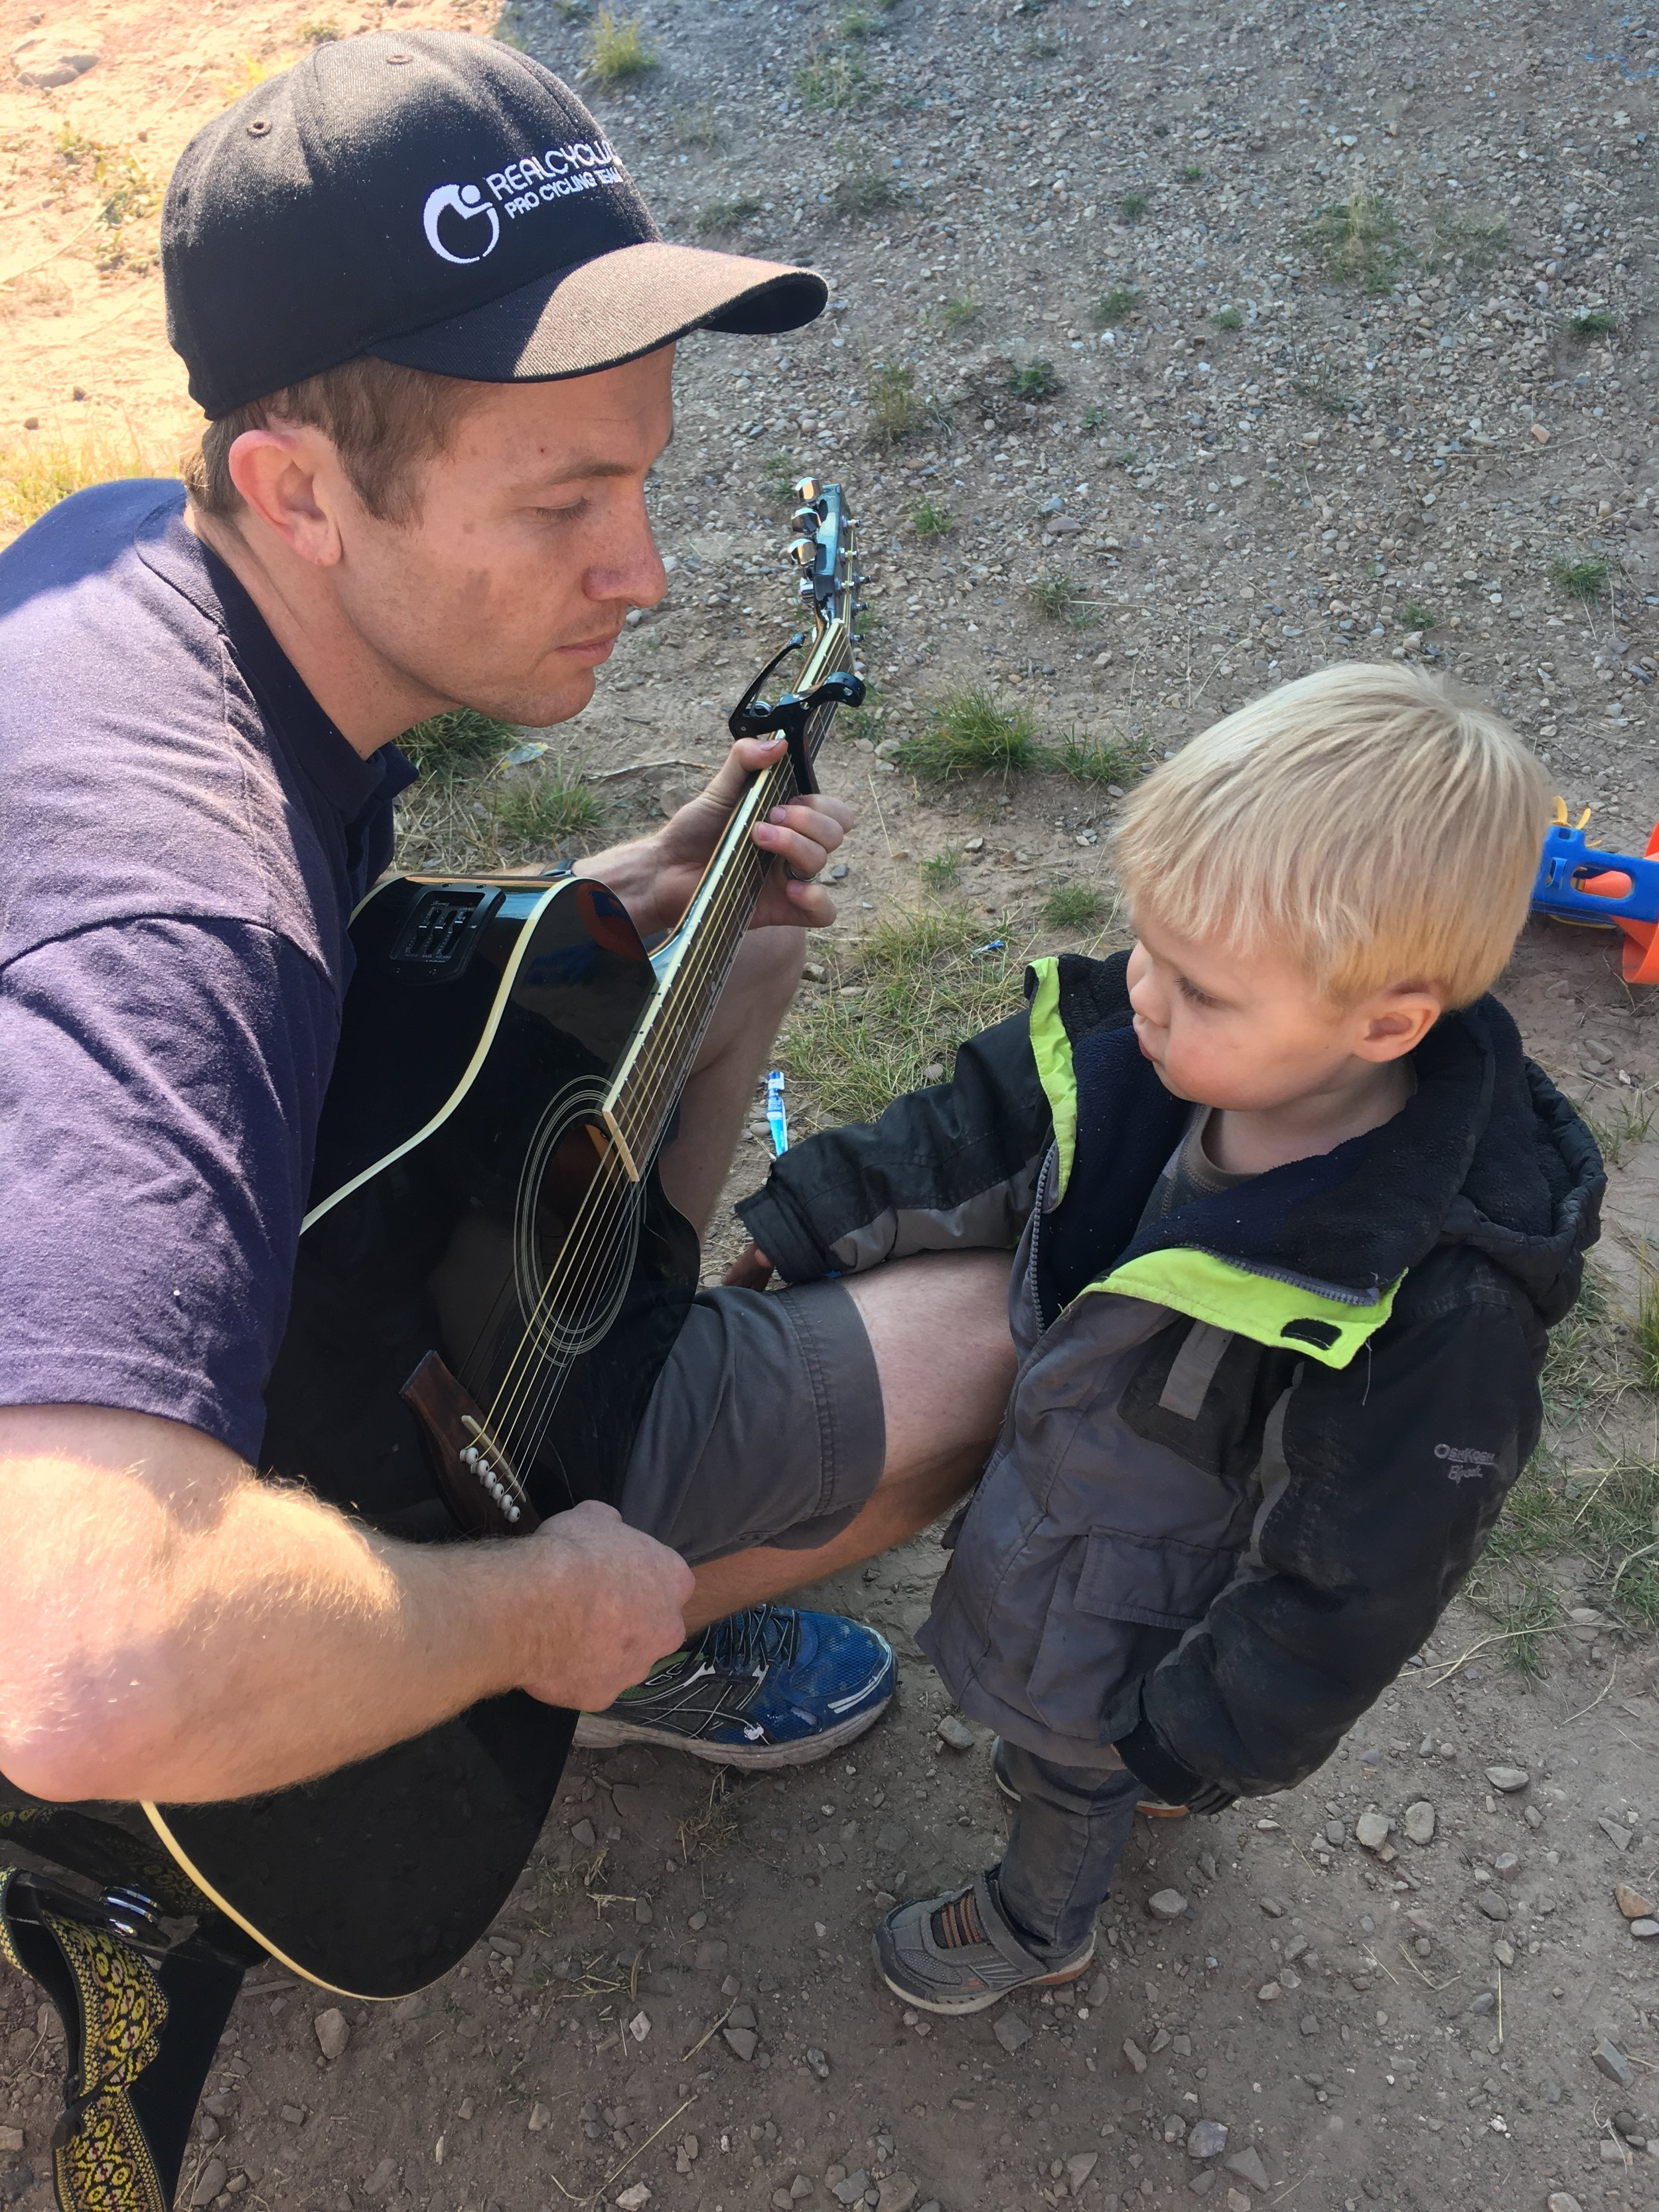 Kyler kept the kids busy by playing some tunes